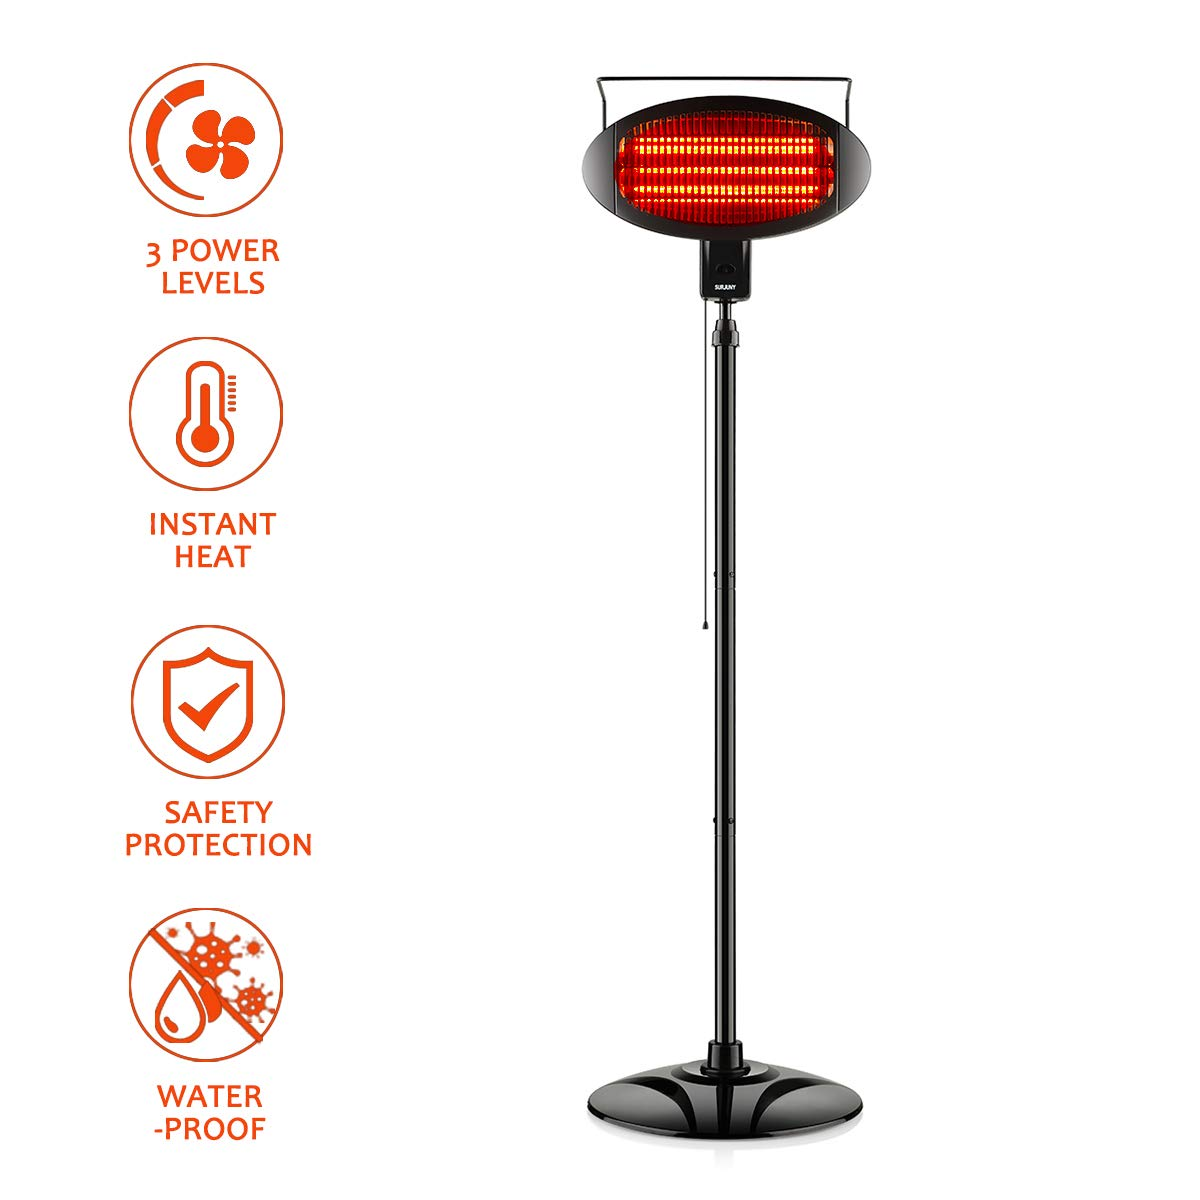 Electric Outdoor Heater, Vertical Halogen Patio Heater with Pull Line Switch, Indoor/Outdoor Heater with 3 Power Levels, Waterproof by SUND